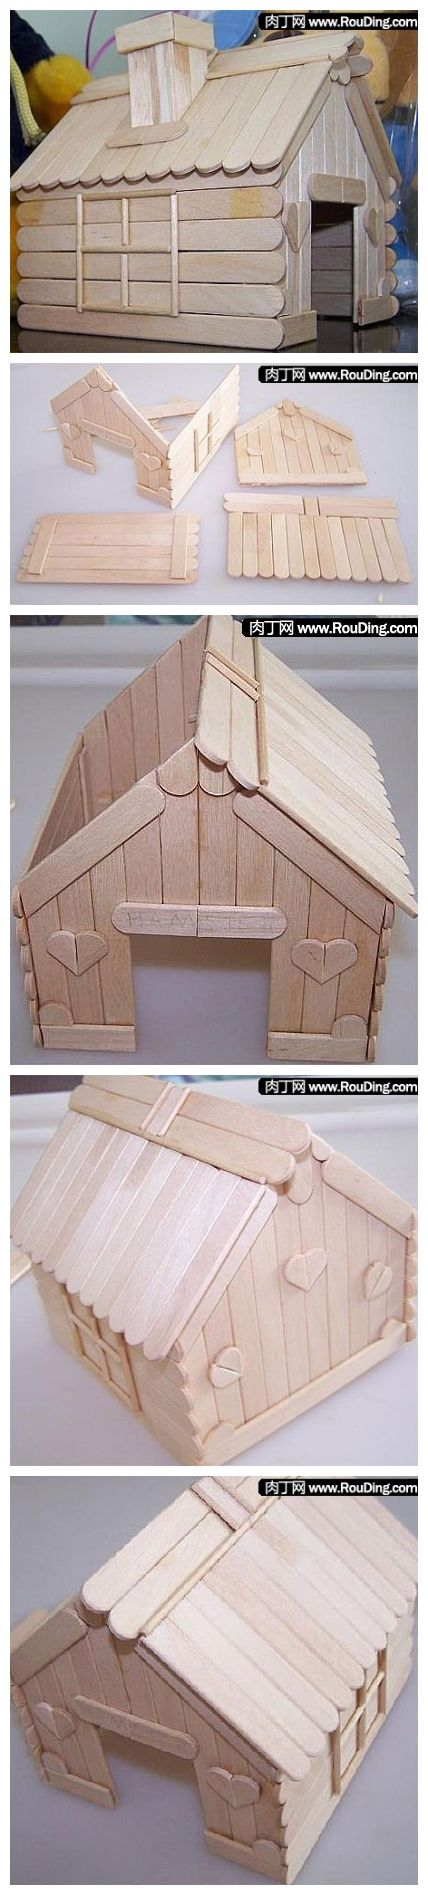 DIY house out of Popsicle sticks